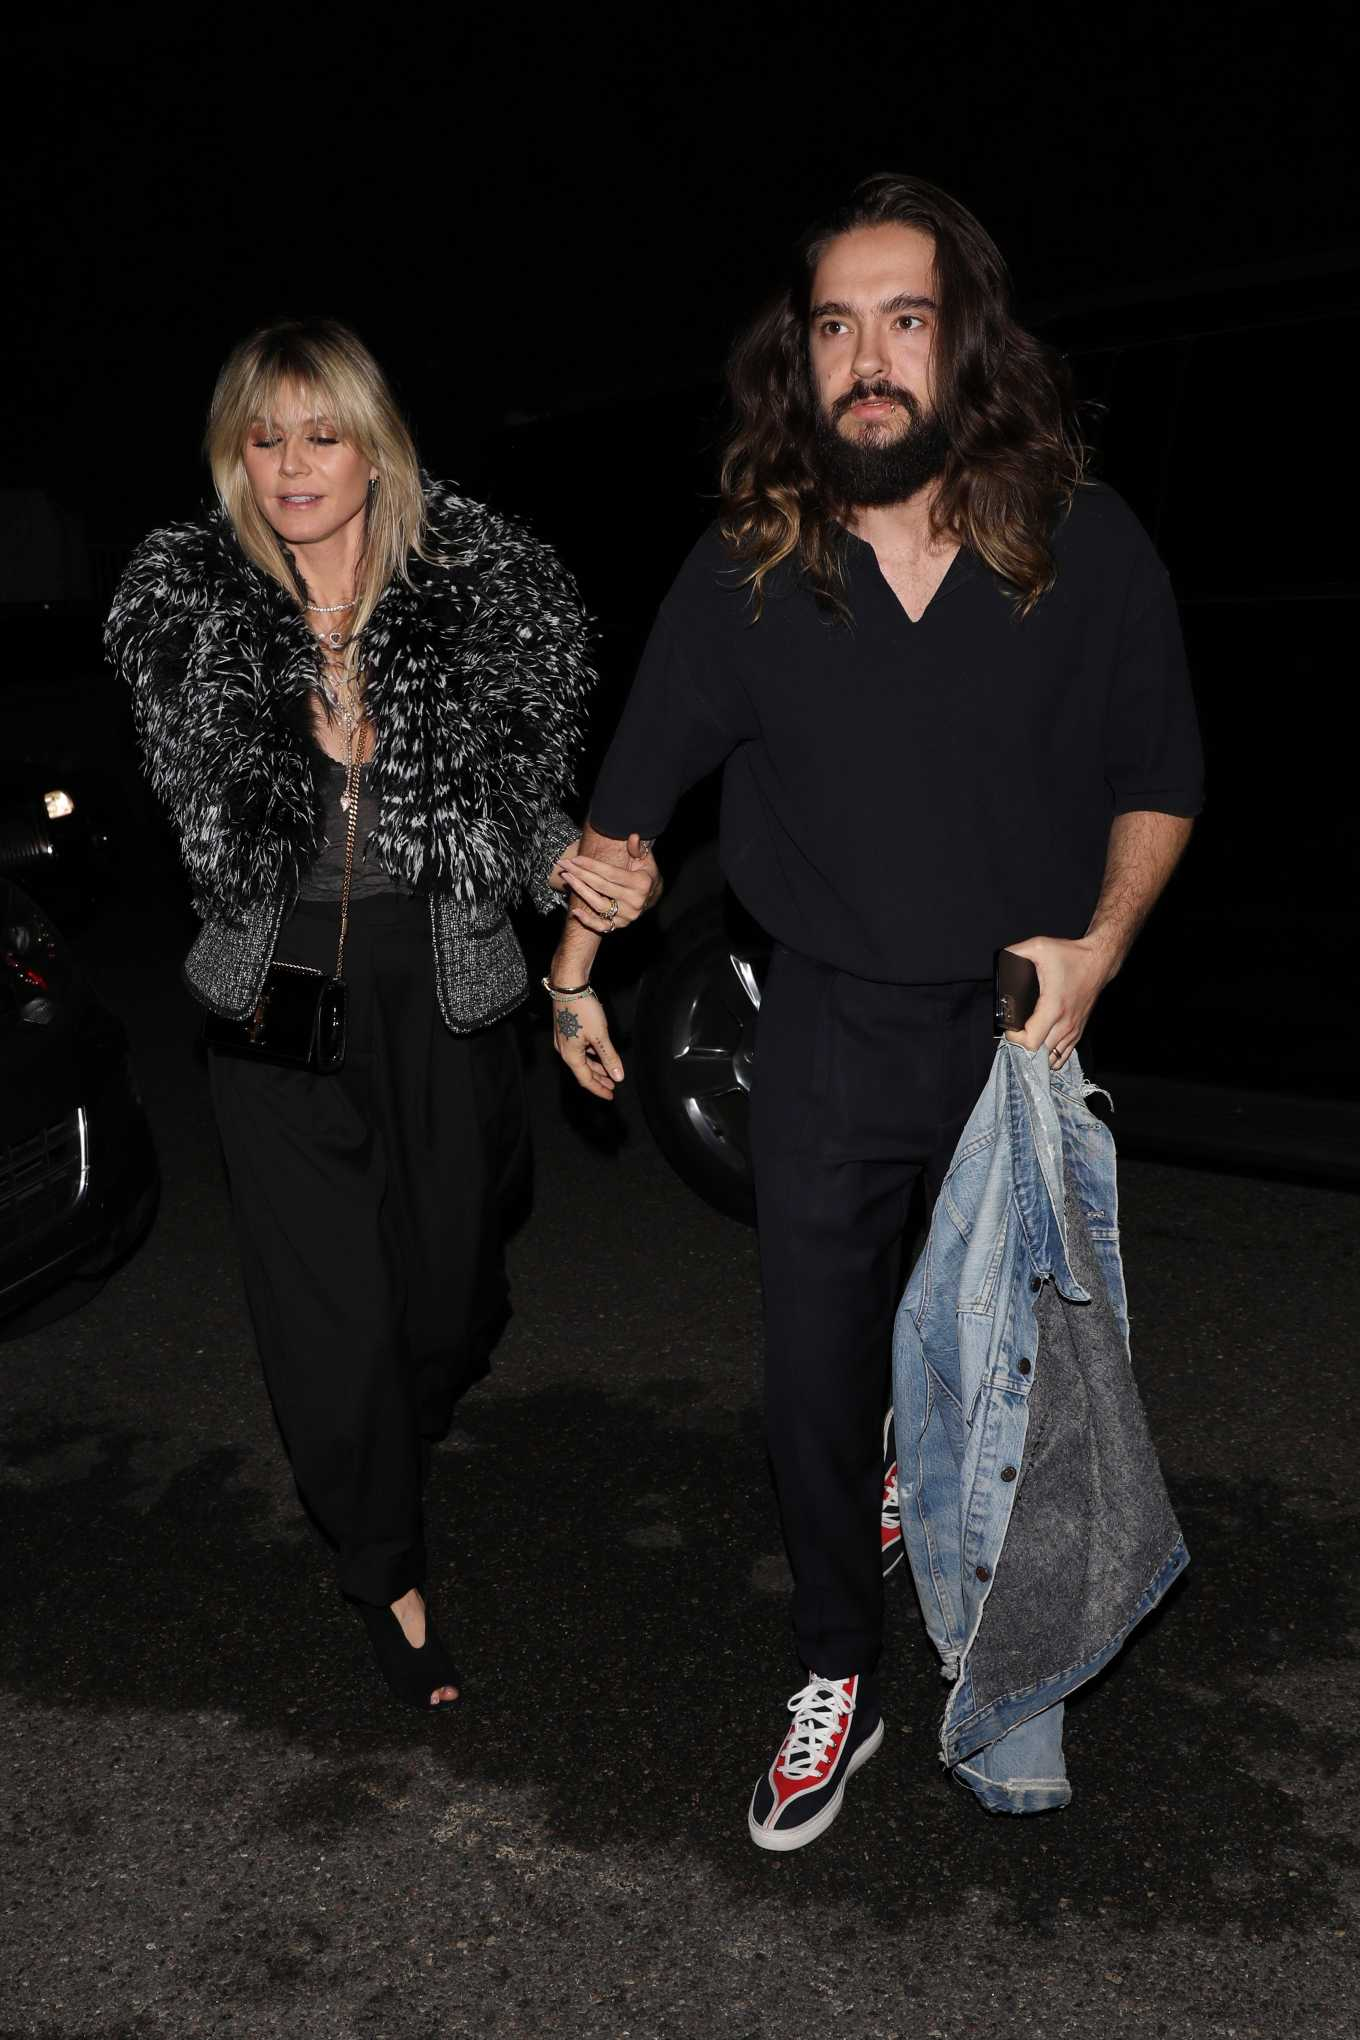 Heidi Klum and Tom Kaulitz attend Paris Hilton's 39th birthday party in Los Angeles